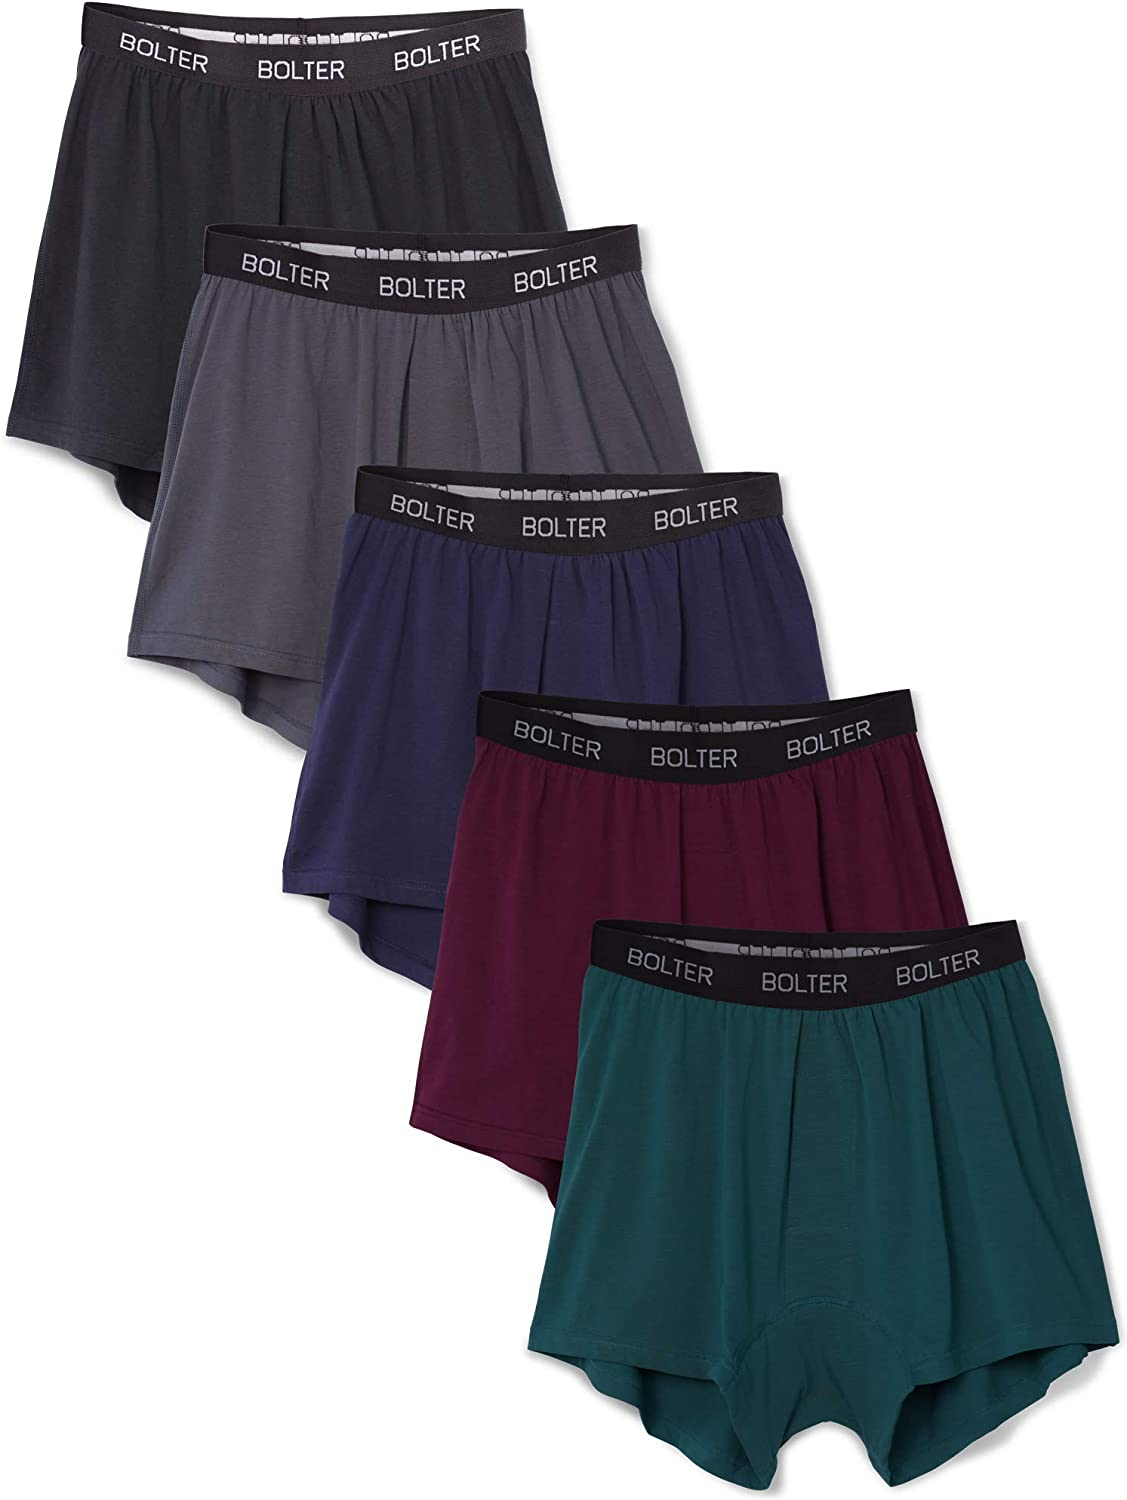 Bolter Men's 5-Pack Cotton Stretch Boxers Shorts